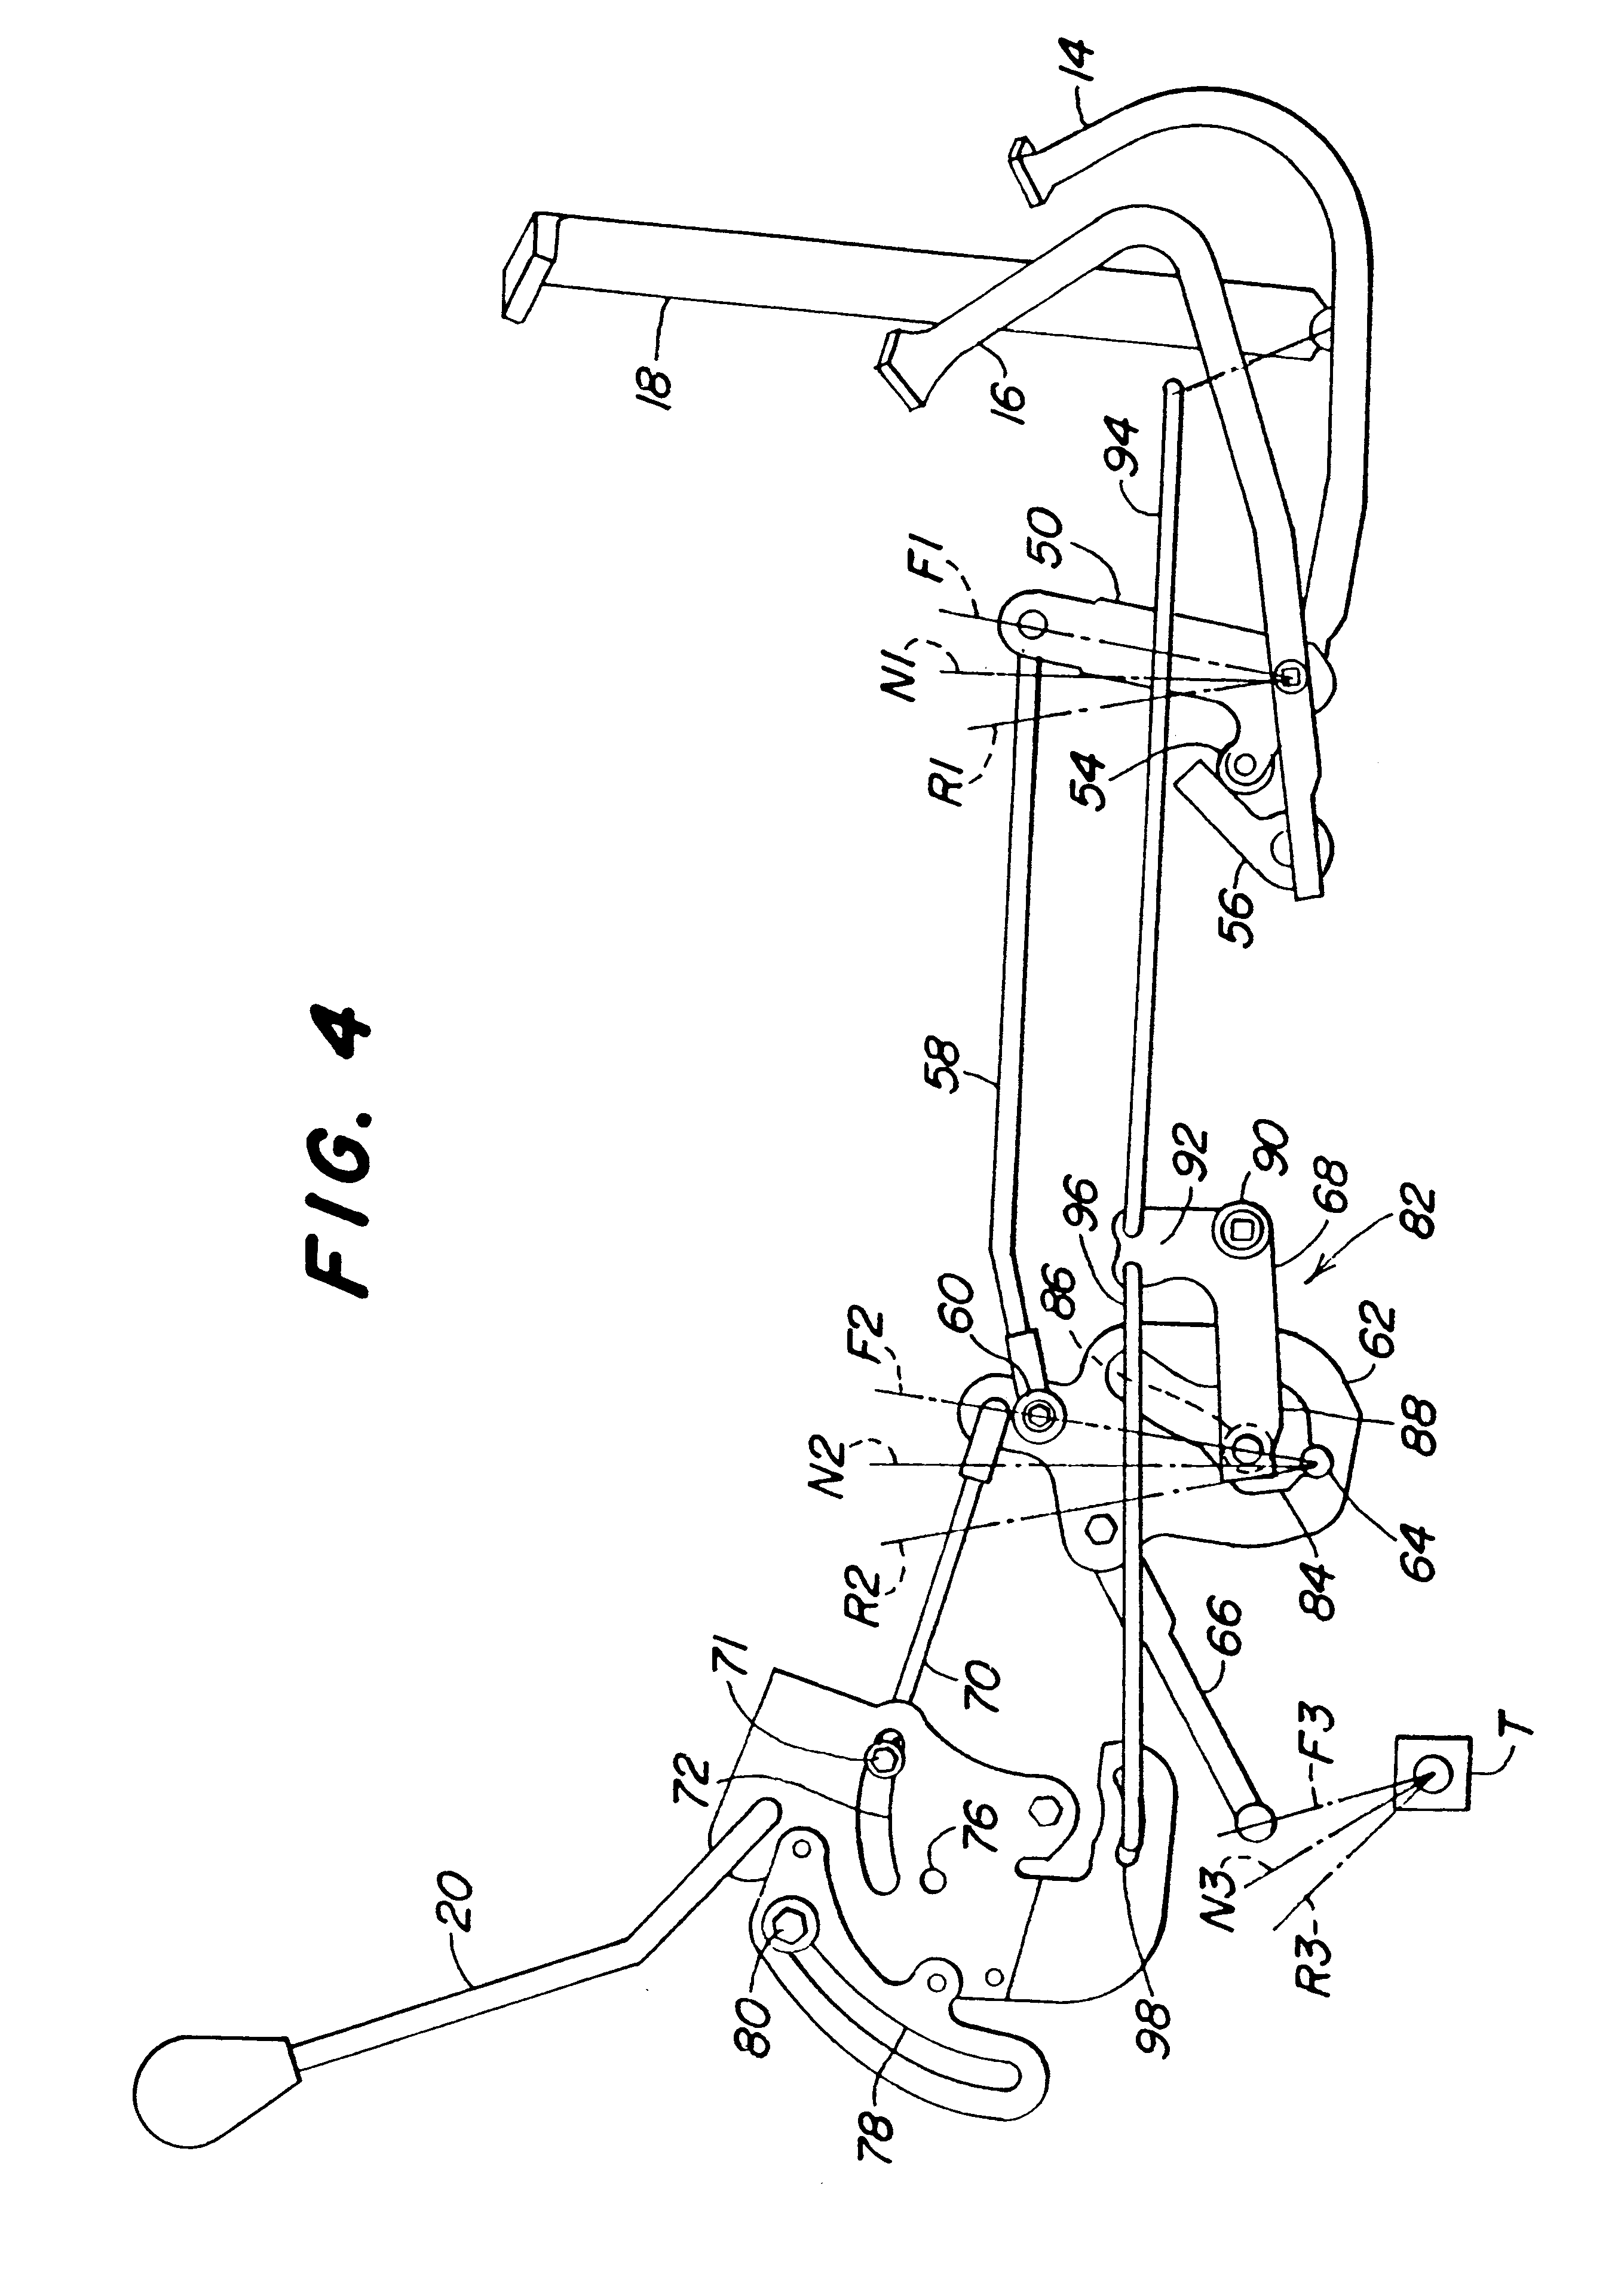 1993 Honda Rear Suspension Diagram Trusted Wiring Diagrams Electrical 1997 Prelude 94 Accord